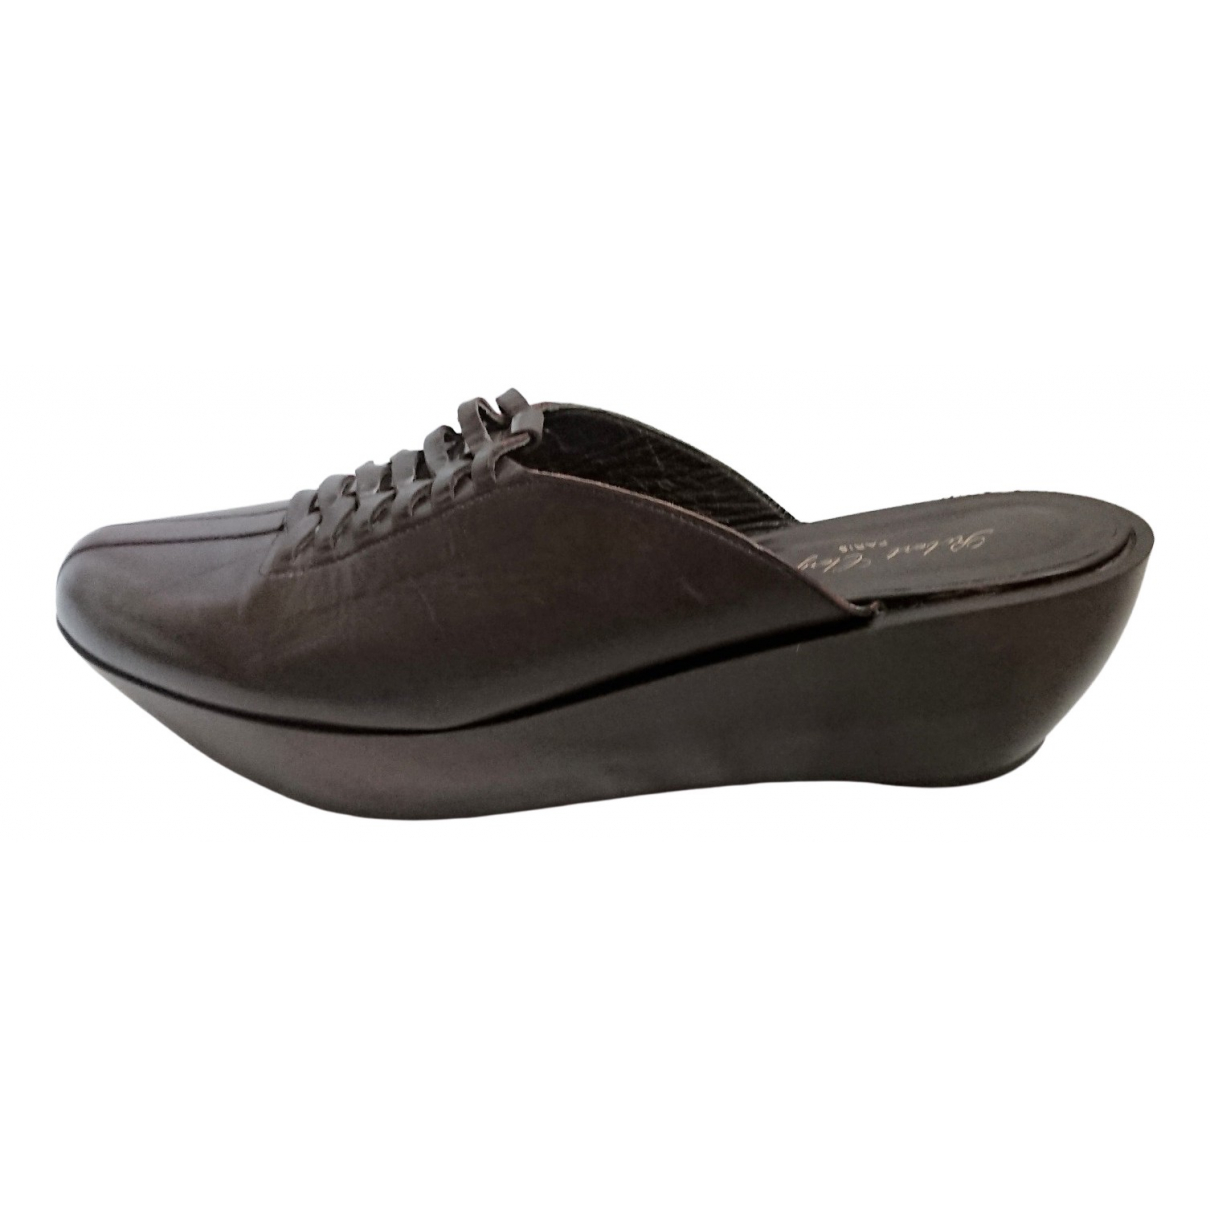 Robert Clergerie \N Brown Leather Mules & Clogs for Women 8 US